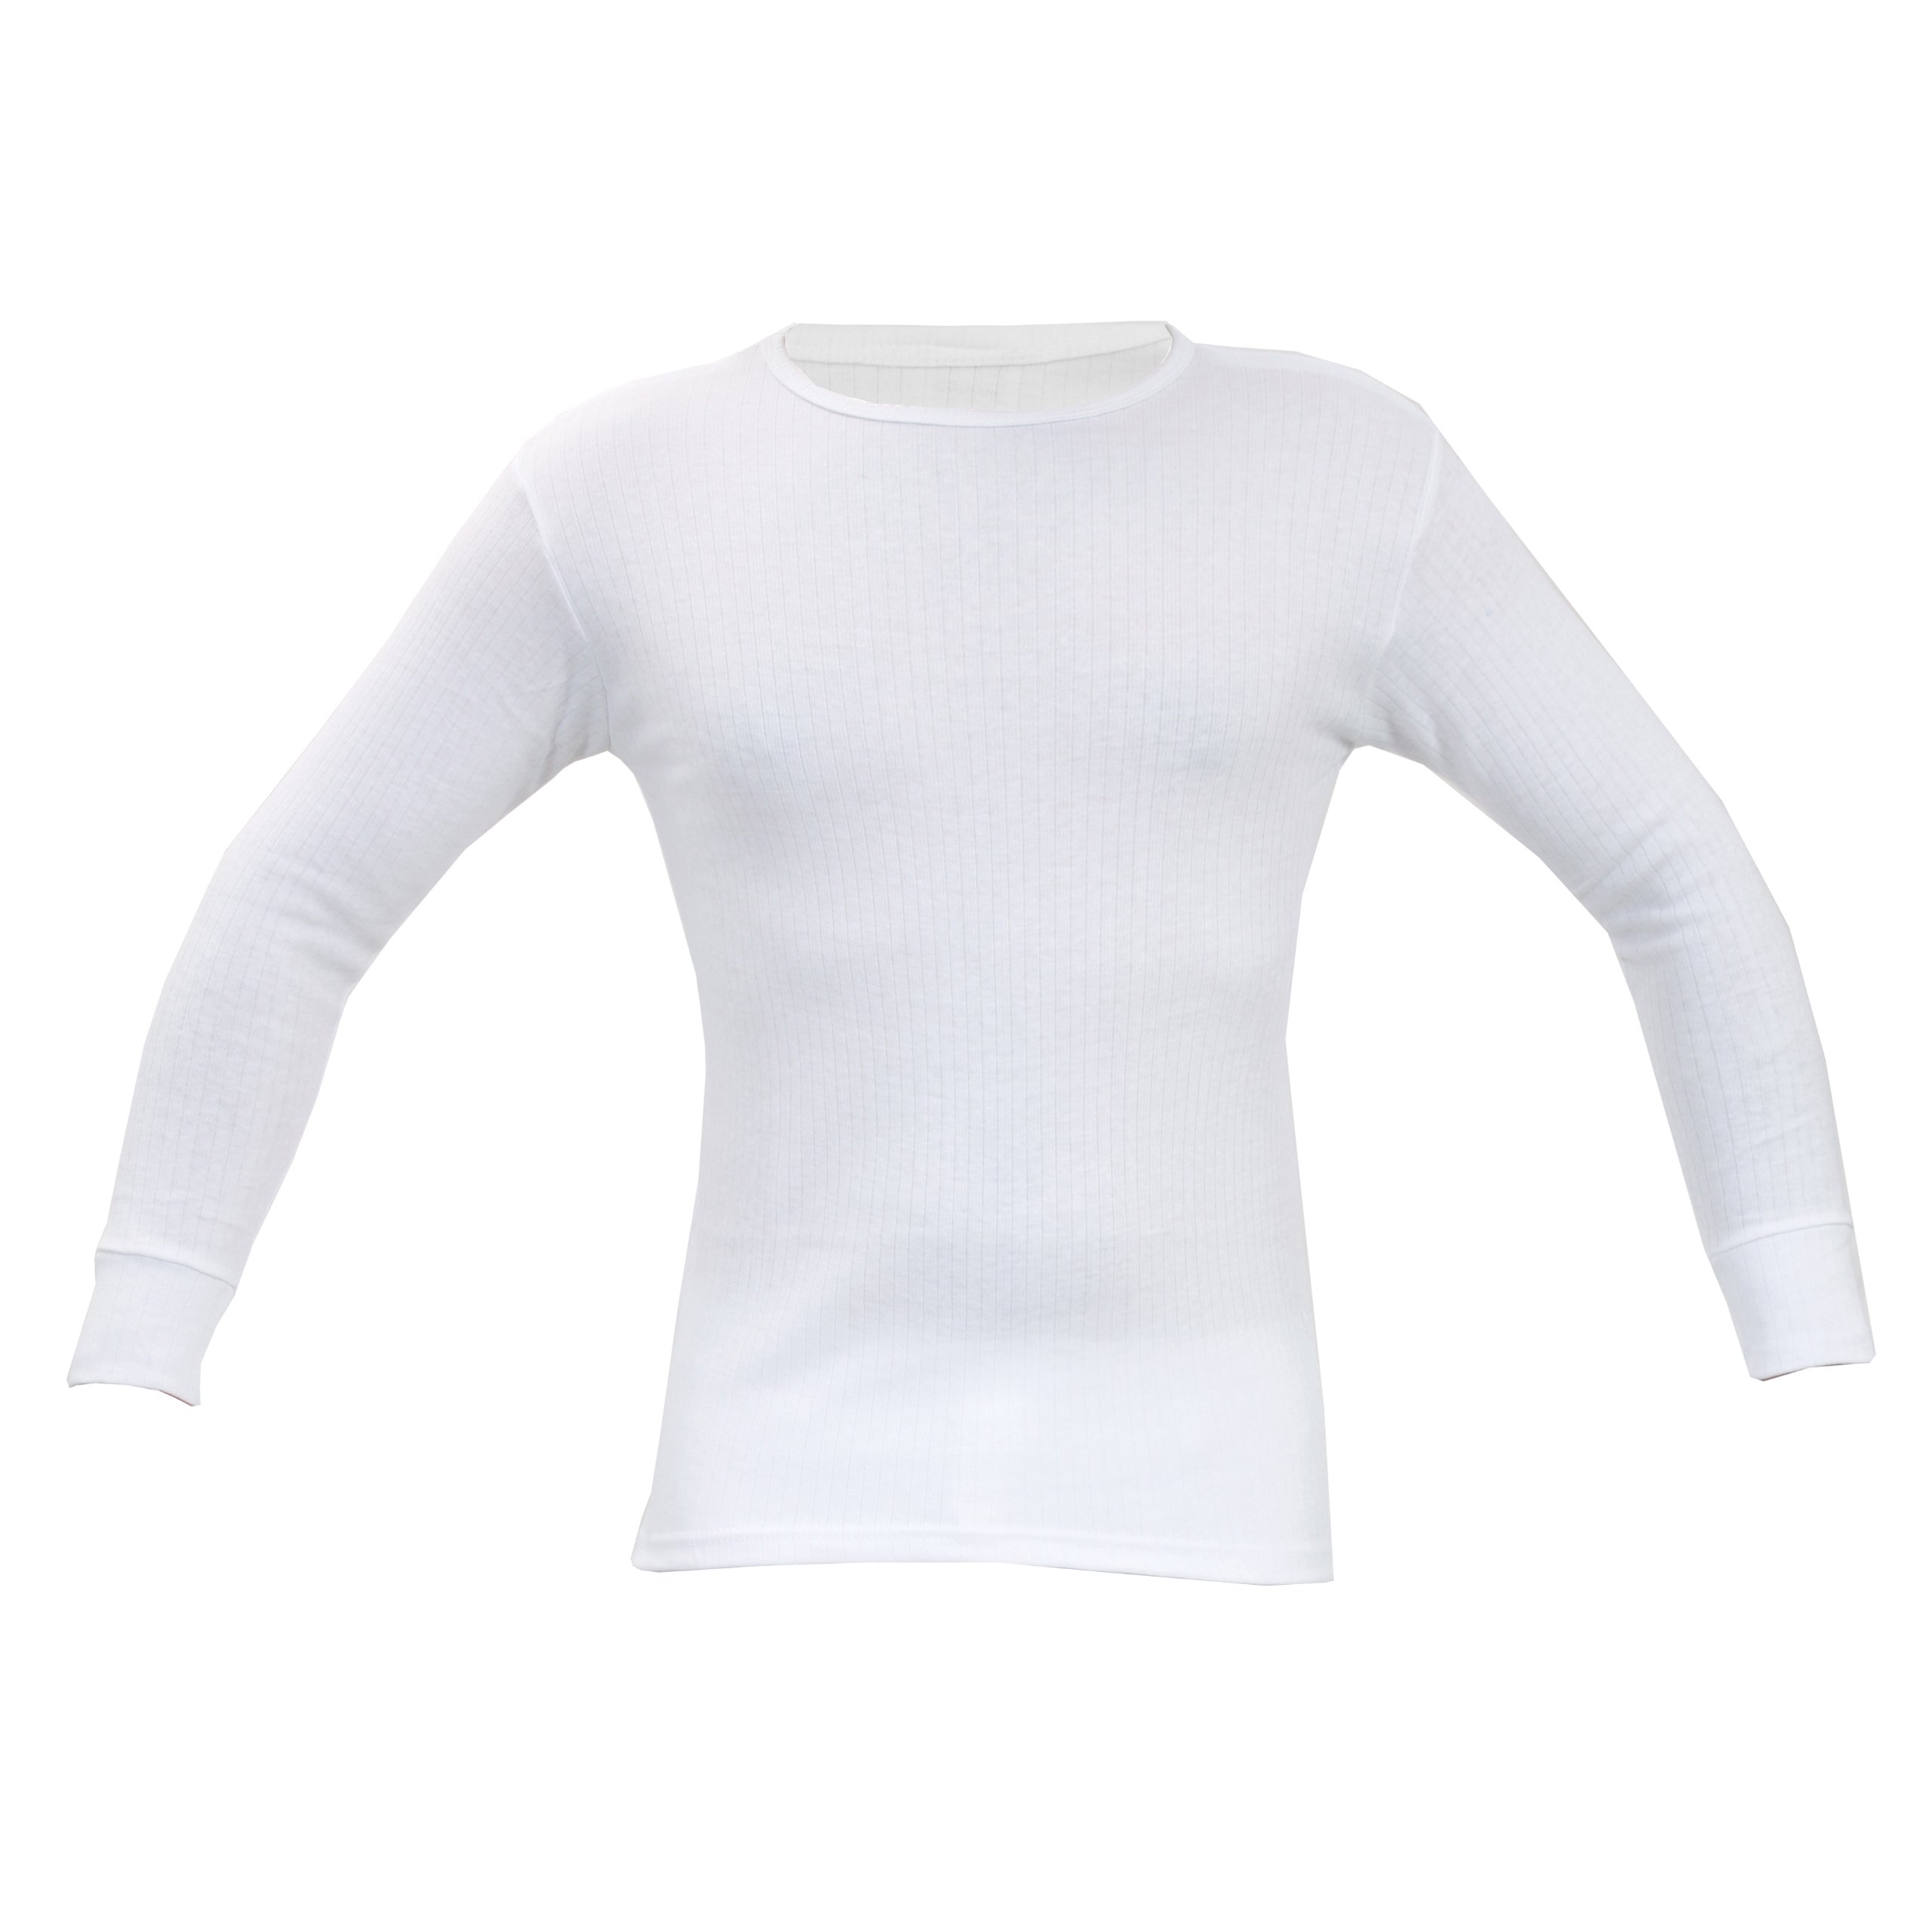 Britwear 2 x Official Childrens Kids Long Sleeve Thermal Underwear Winter Warm